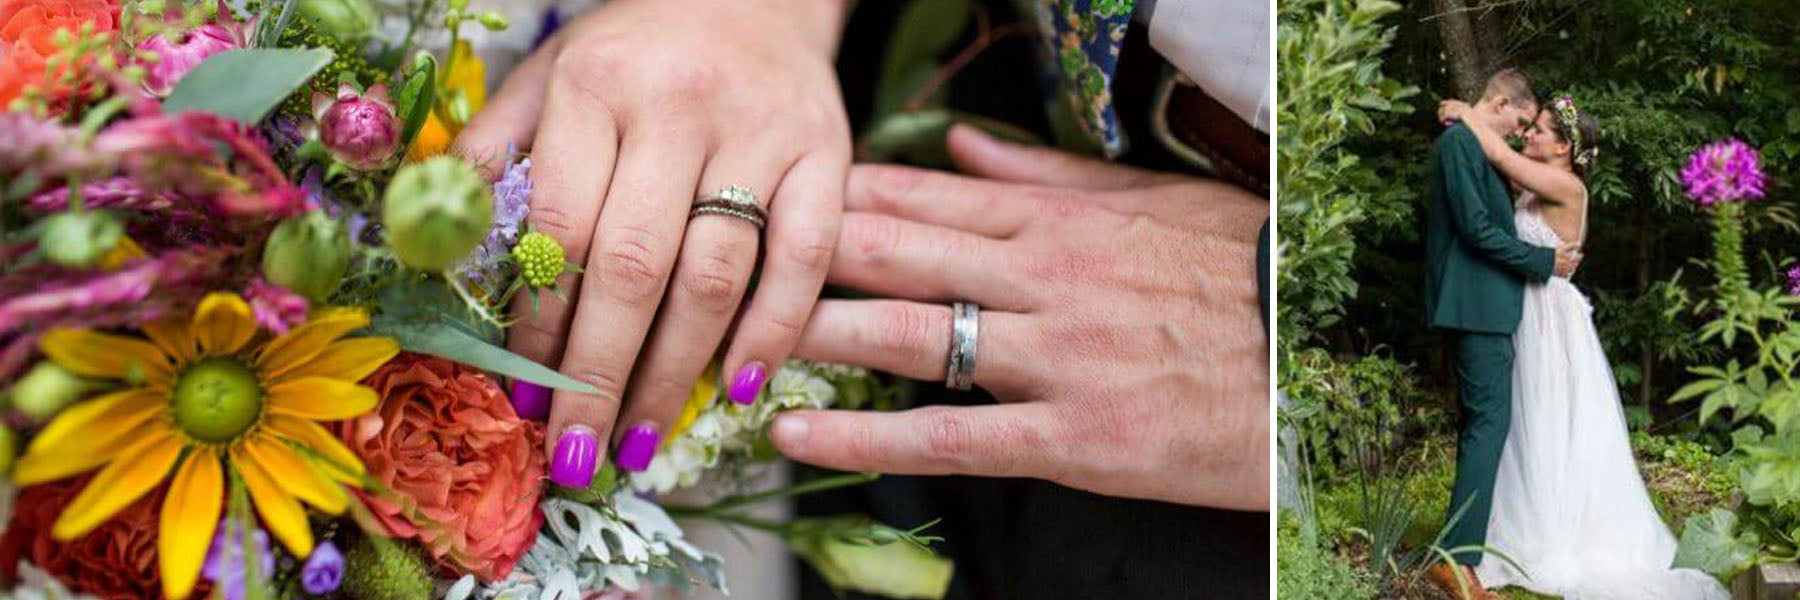 Story Behind the Ring, Amy & Nick | Jewelry by Johan Blog